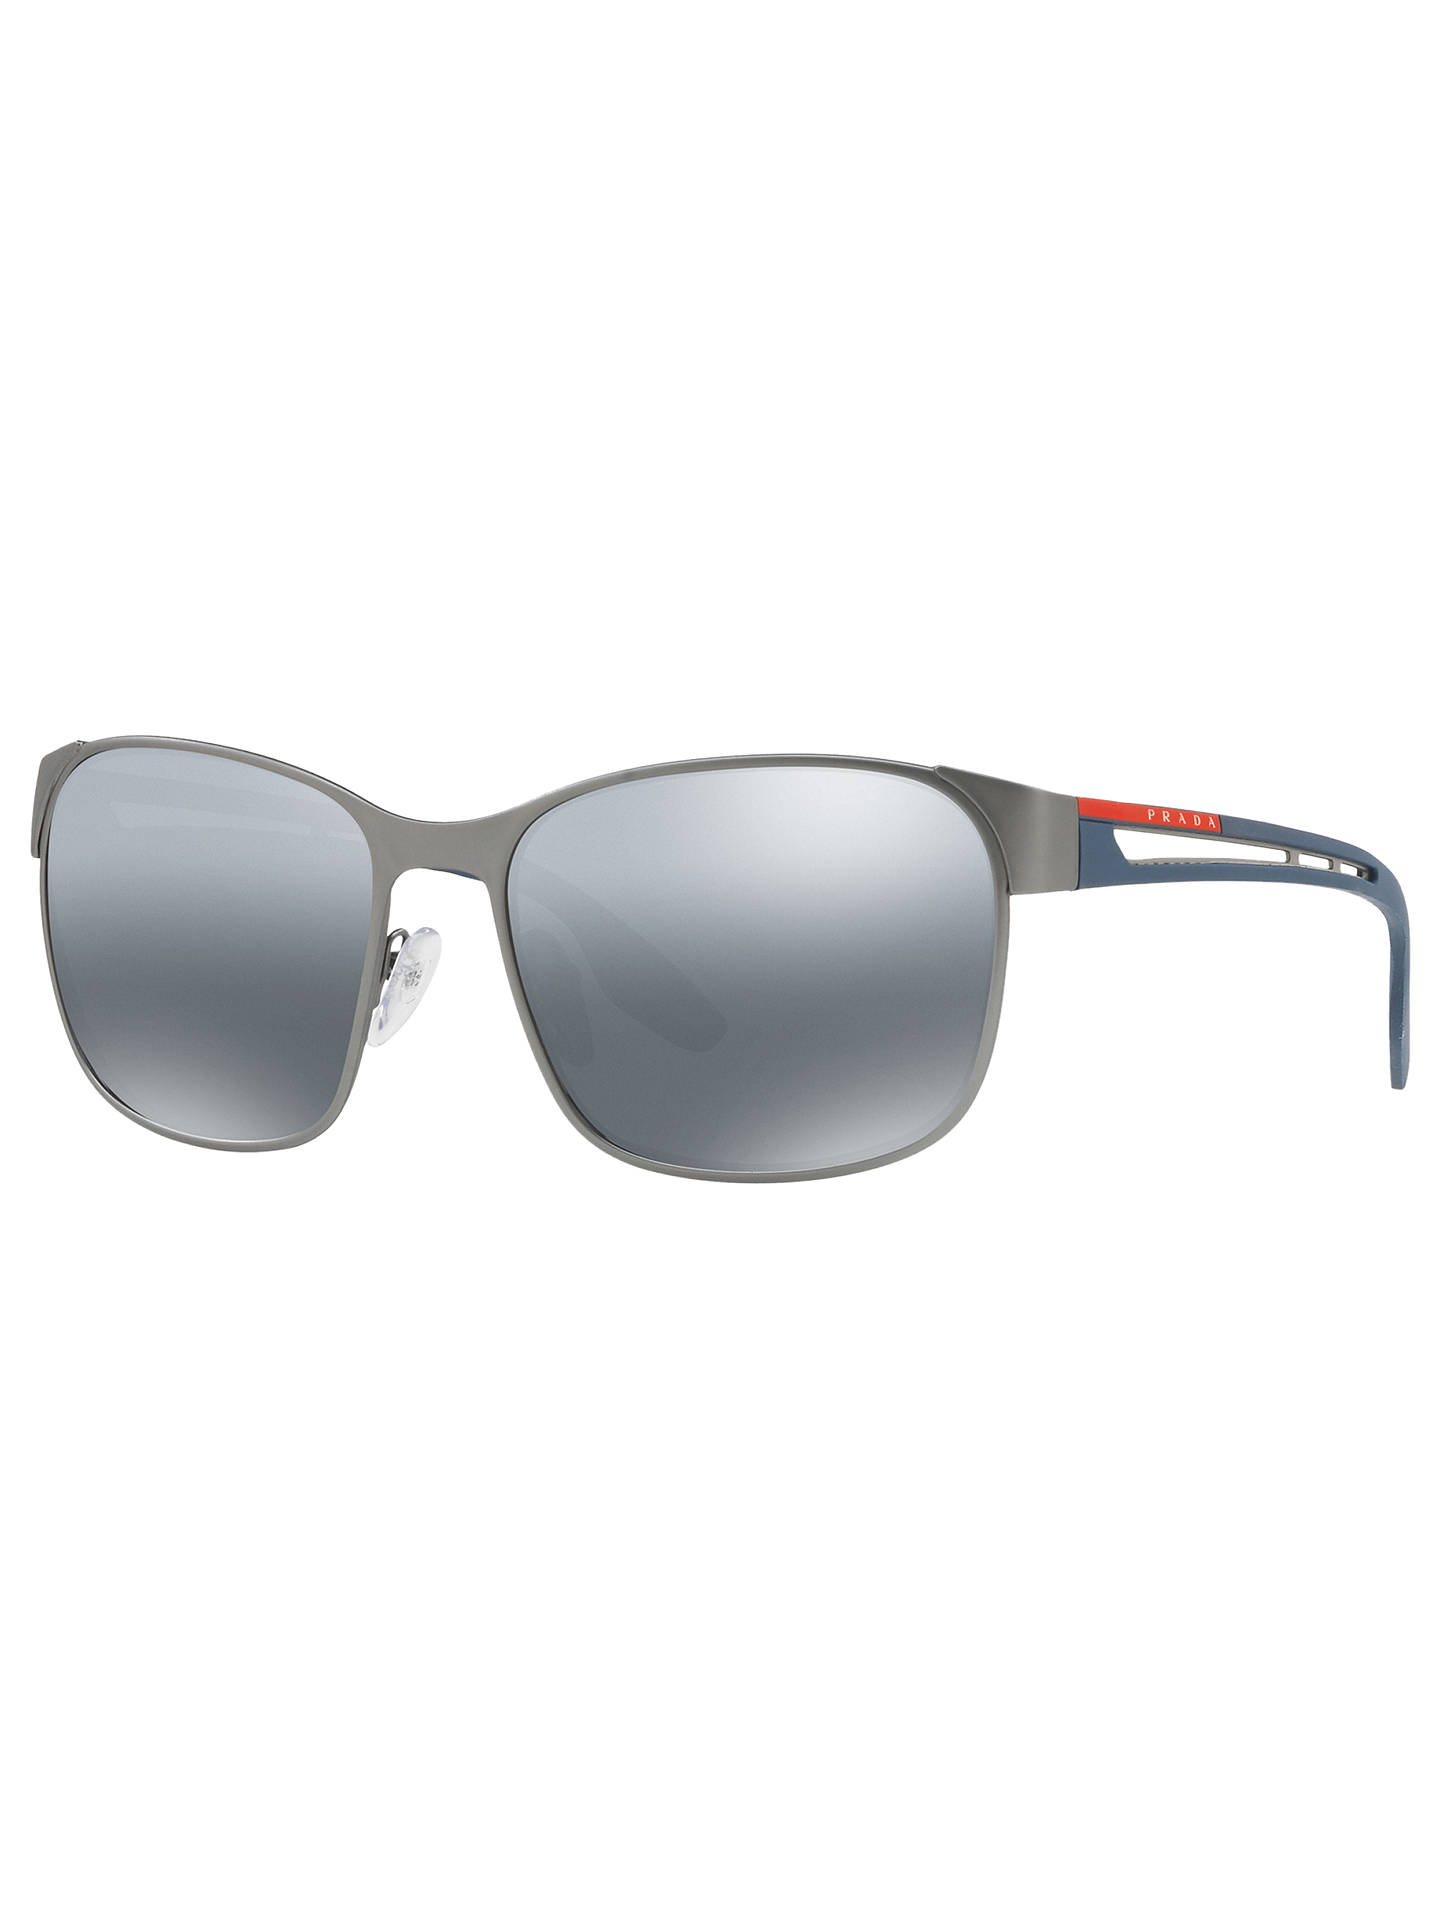 db6d88d56f23 Prada Linea Rossa PS 52TS Men s Polarised Square Sunglasses ...